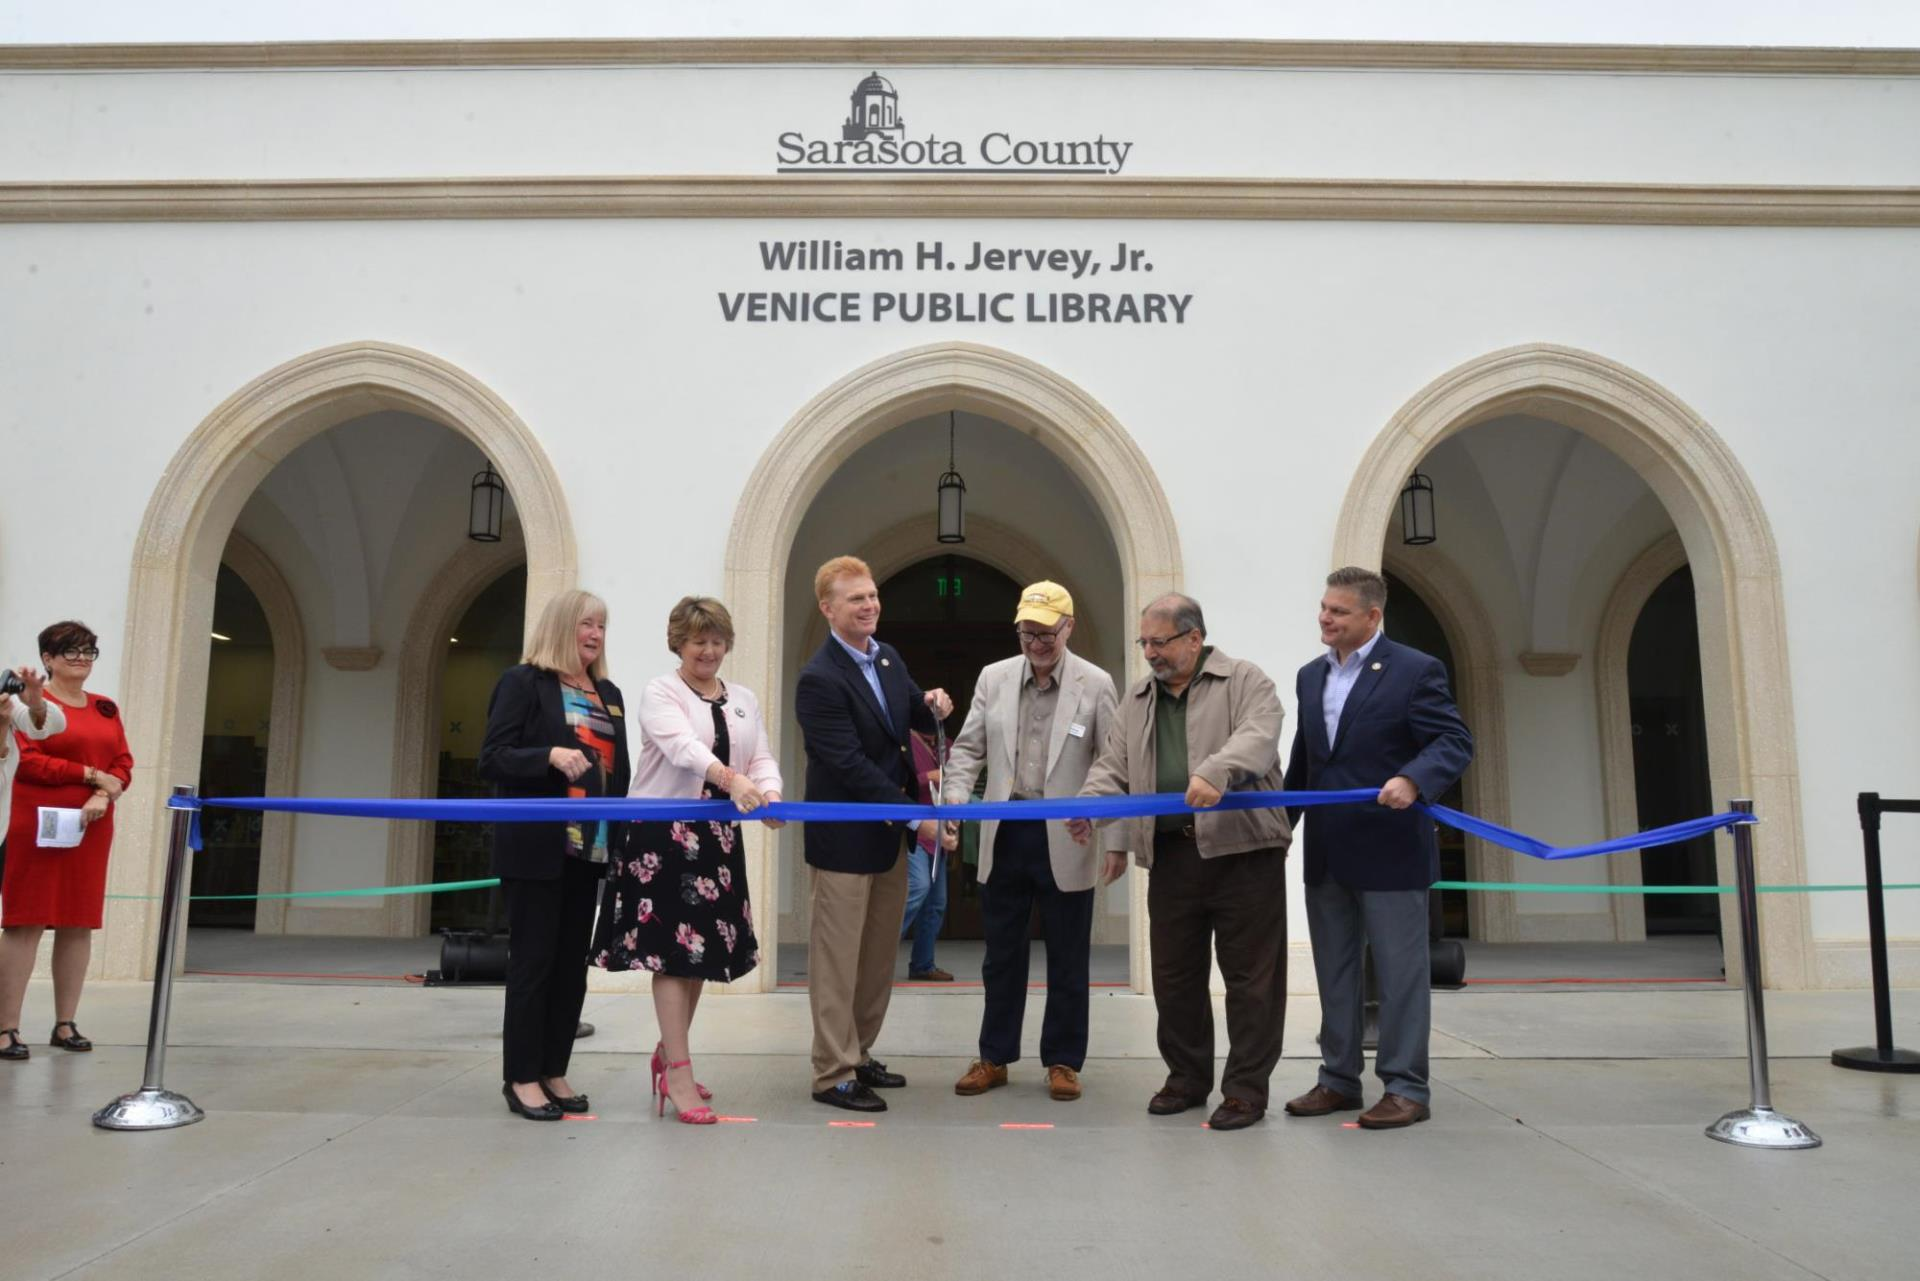 Key leaders cut the ribbon, officially opening the William H. Jervey Jr. Venice Public Library Dec. 15, 2018.